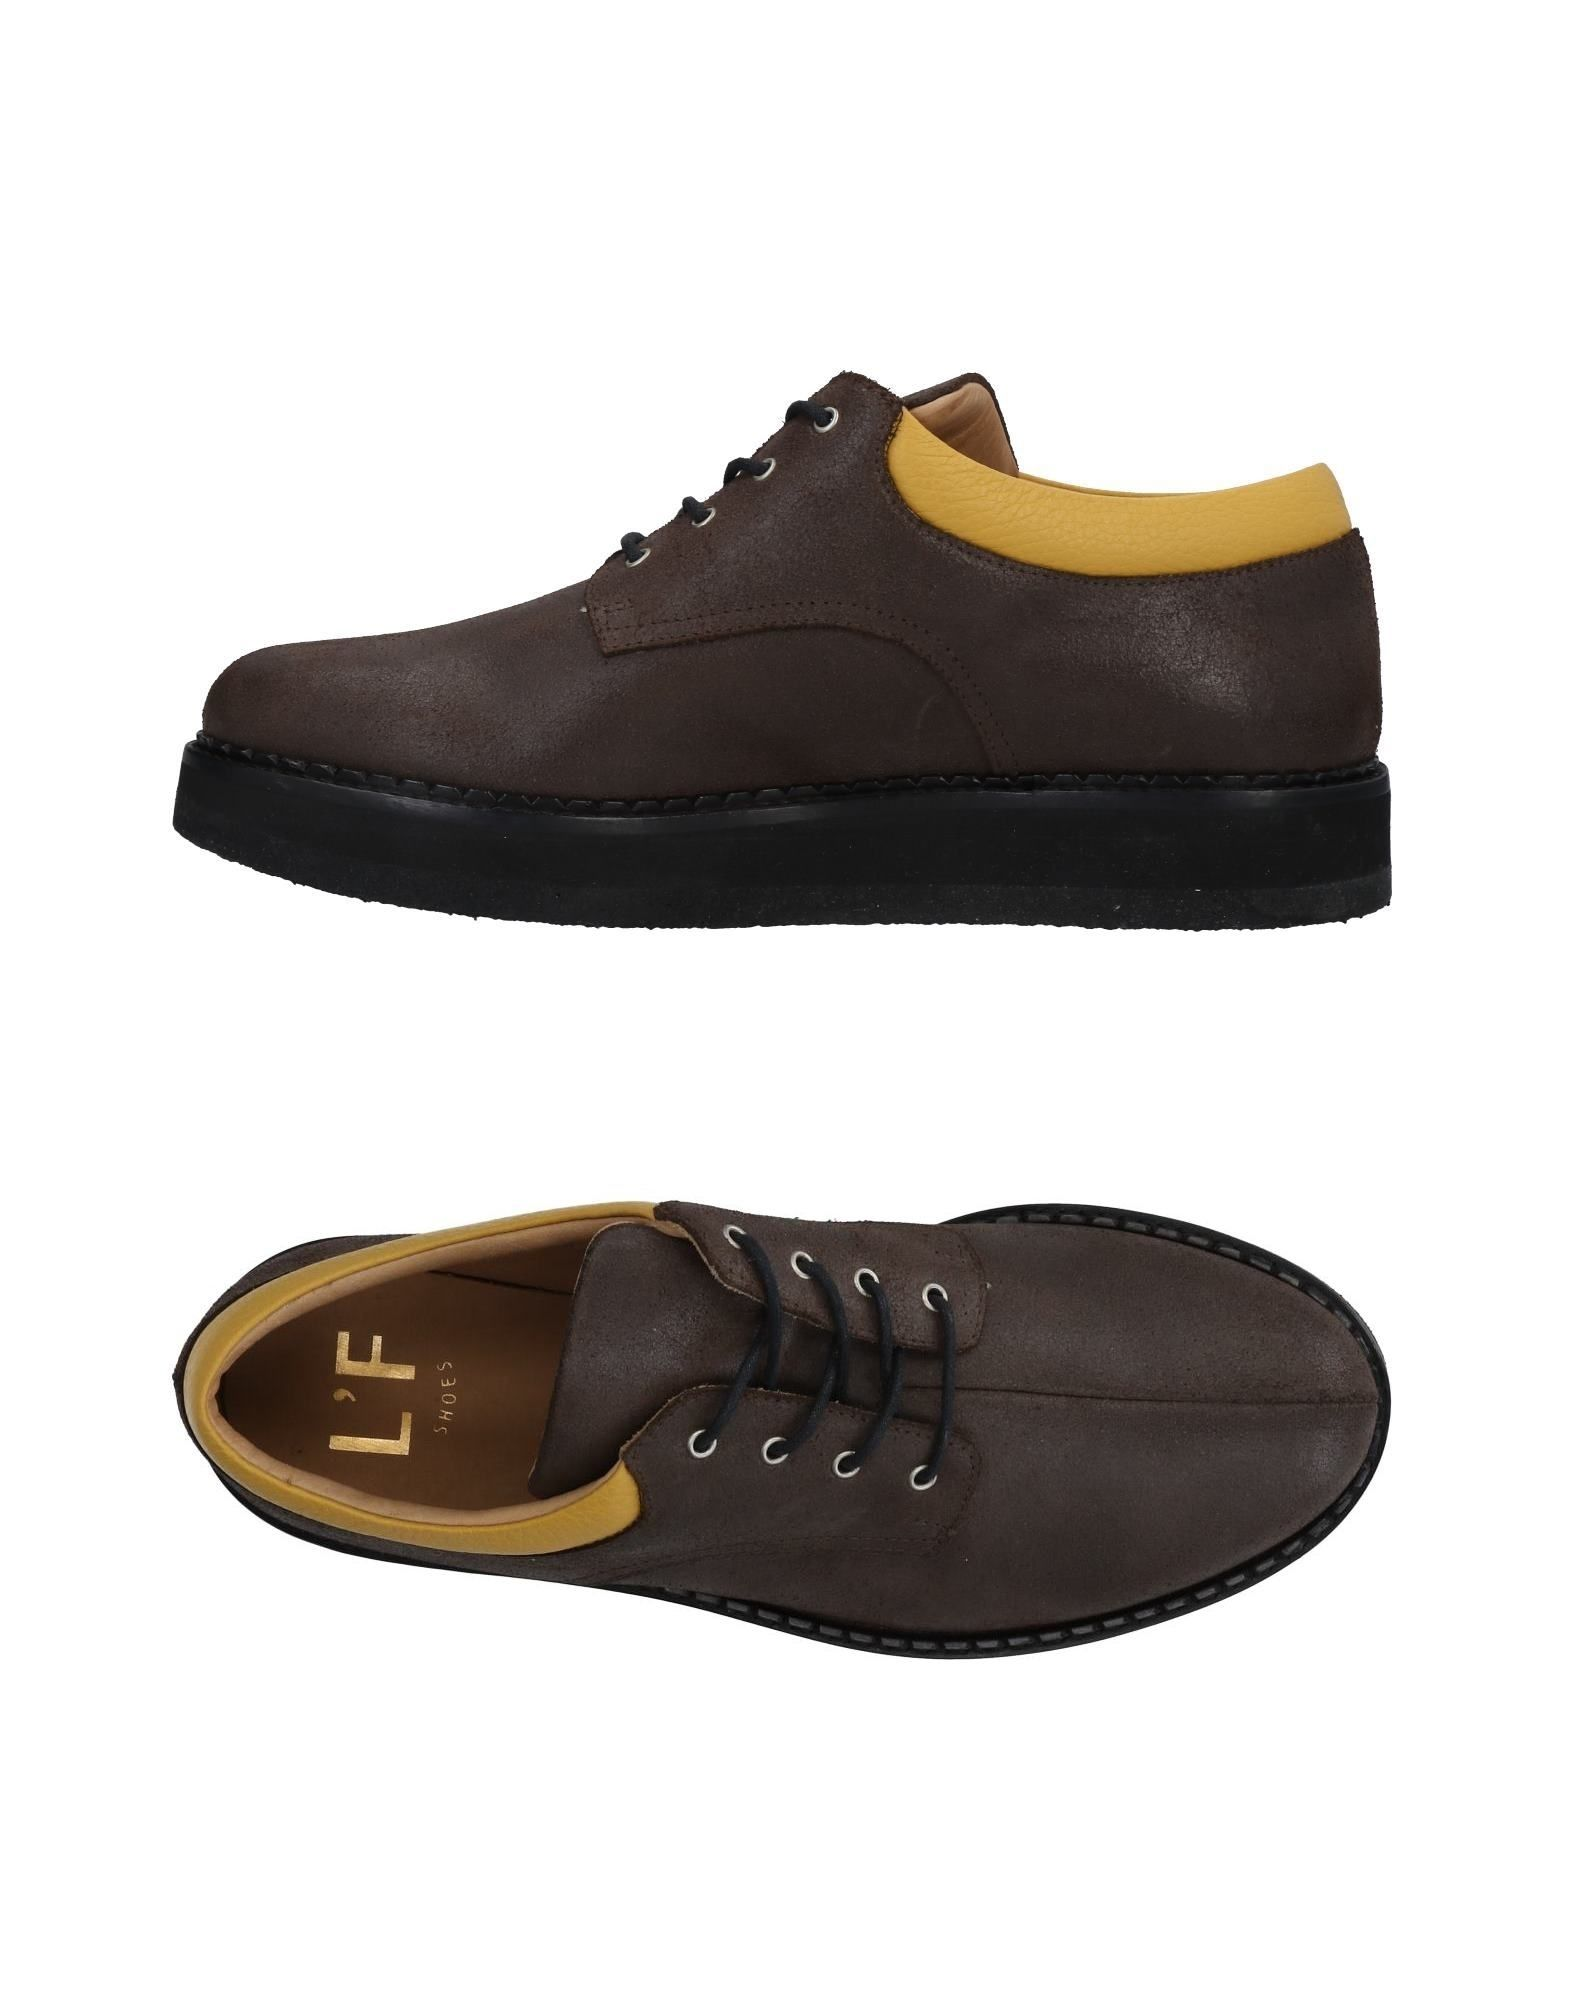 L'F SHOES Laced Shoes in Dark Brown